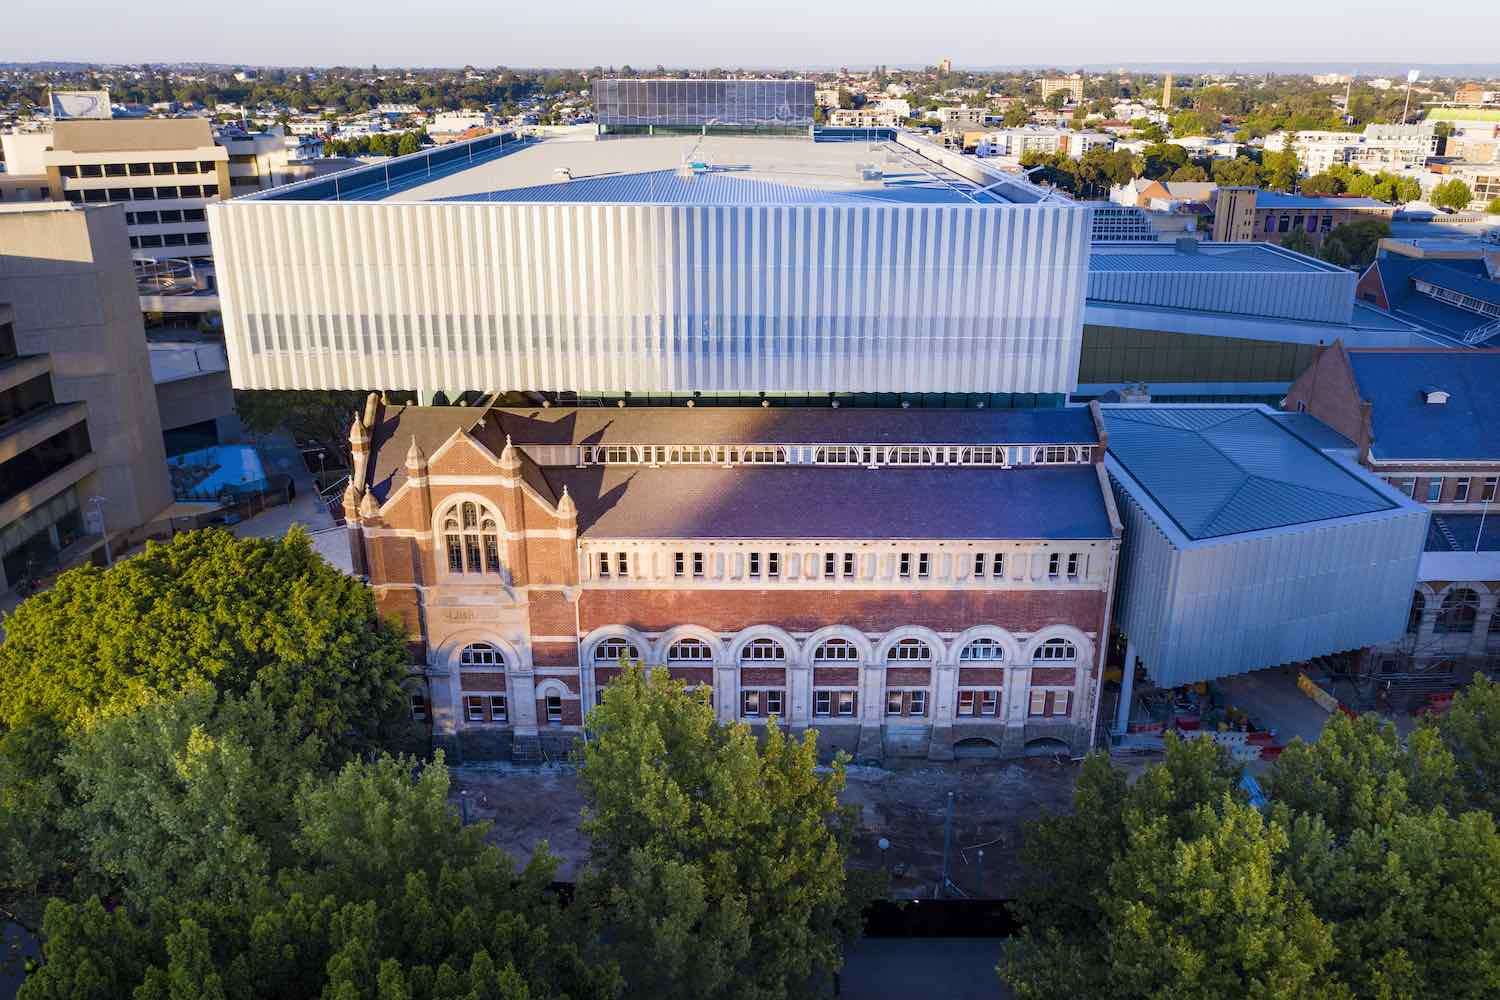 New Museum for Western Australian Museum. Hackett Hall and canitlever - Photo by Michael Haluwana, Aeroture.